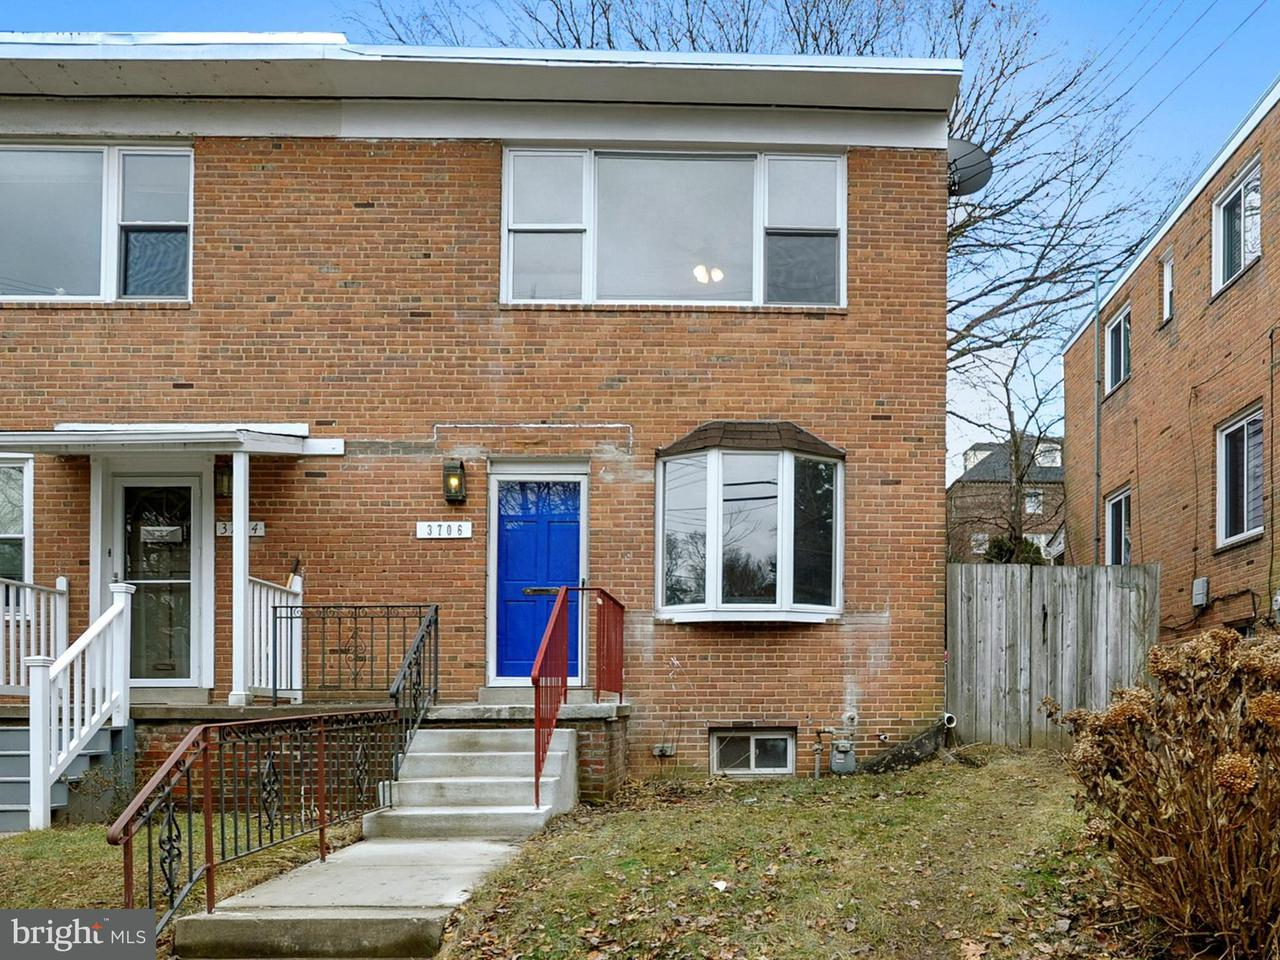 Other Residential for Rent at 3706 Alton Pl NW Washington, District Of Columbia 20016 United States